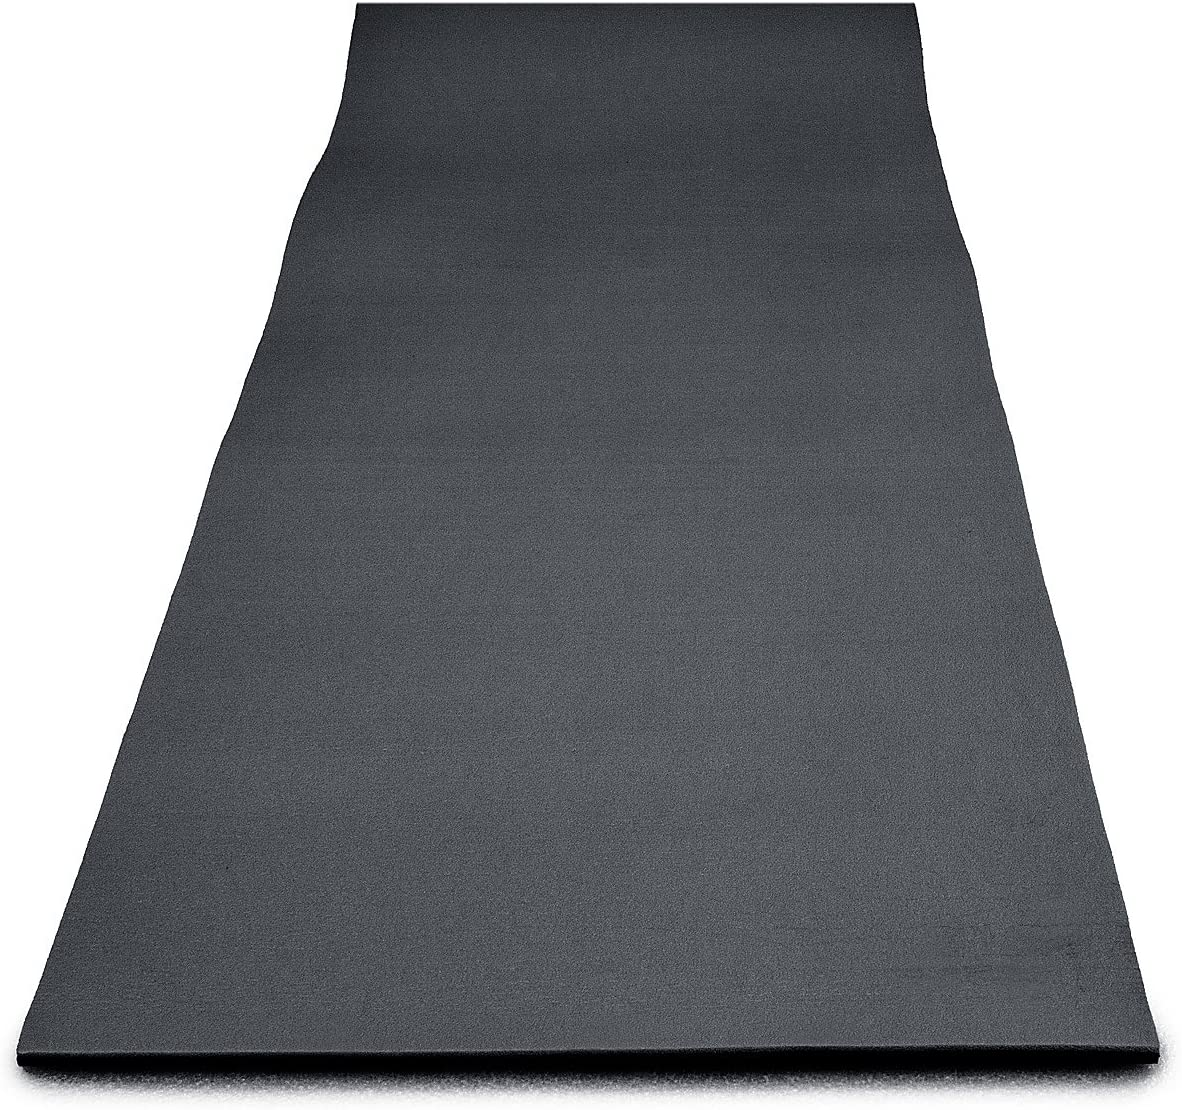 Mondaplen Outdoor Mat: reversible mat for camping but it also can be used for exercise poolside or beach Includes drawstring carrying bag and elastic band 60 cm x 172 cm x 1.5 cm thick. One side is waved and the other is flat 4 colours available